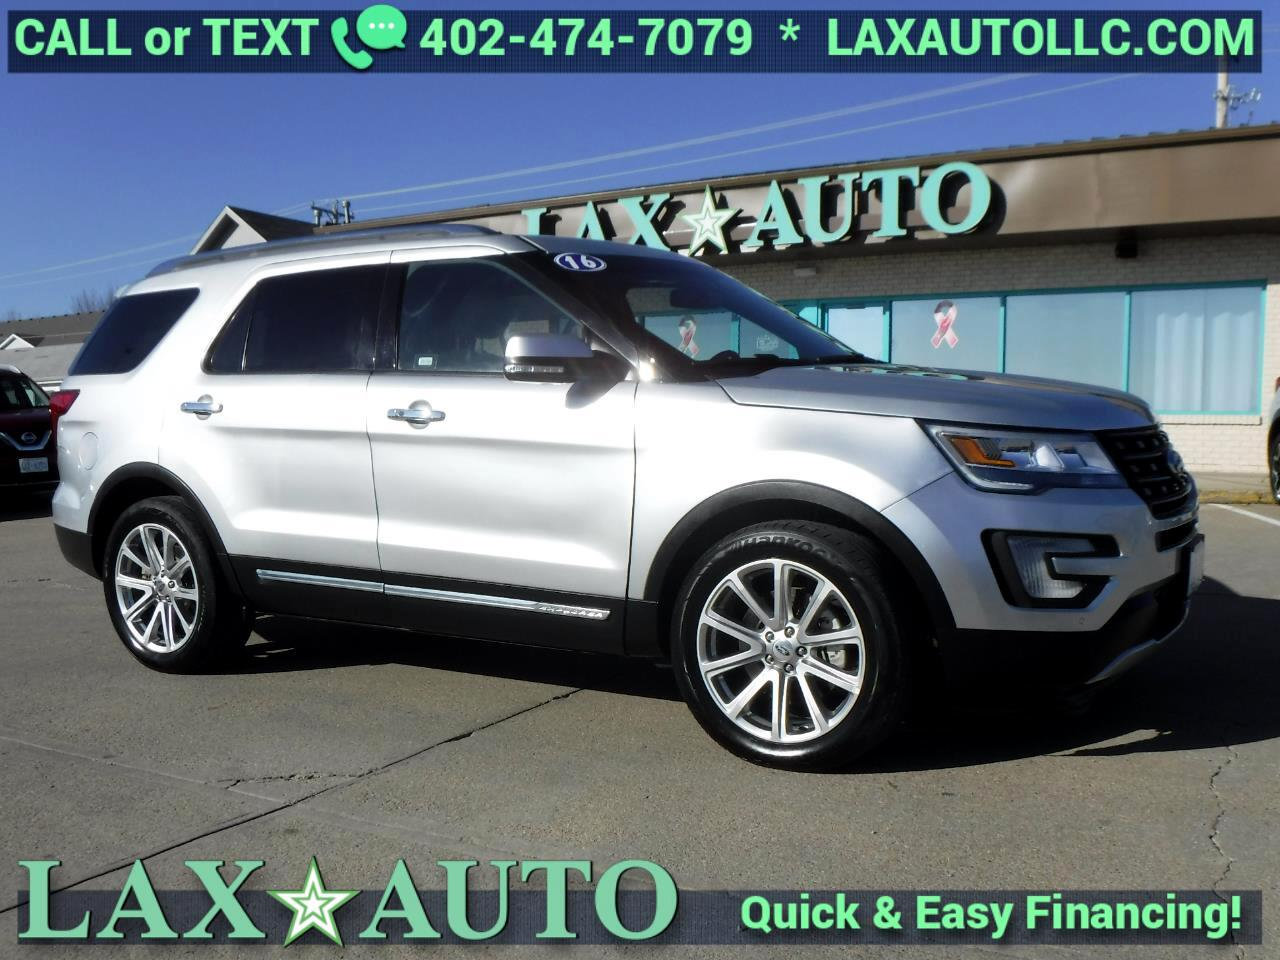 2016 Ford Explorer Limited * 42k miles * Navi! Back-up Cam! 3rd Row!